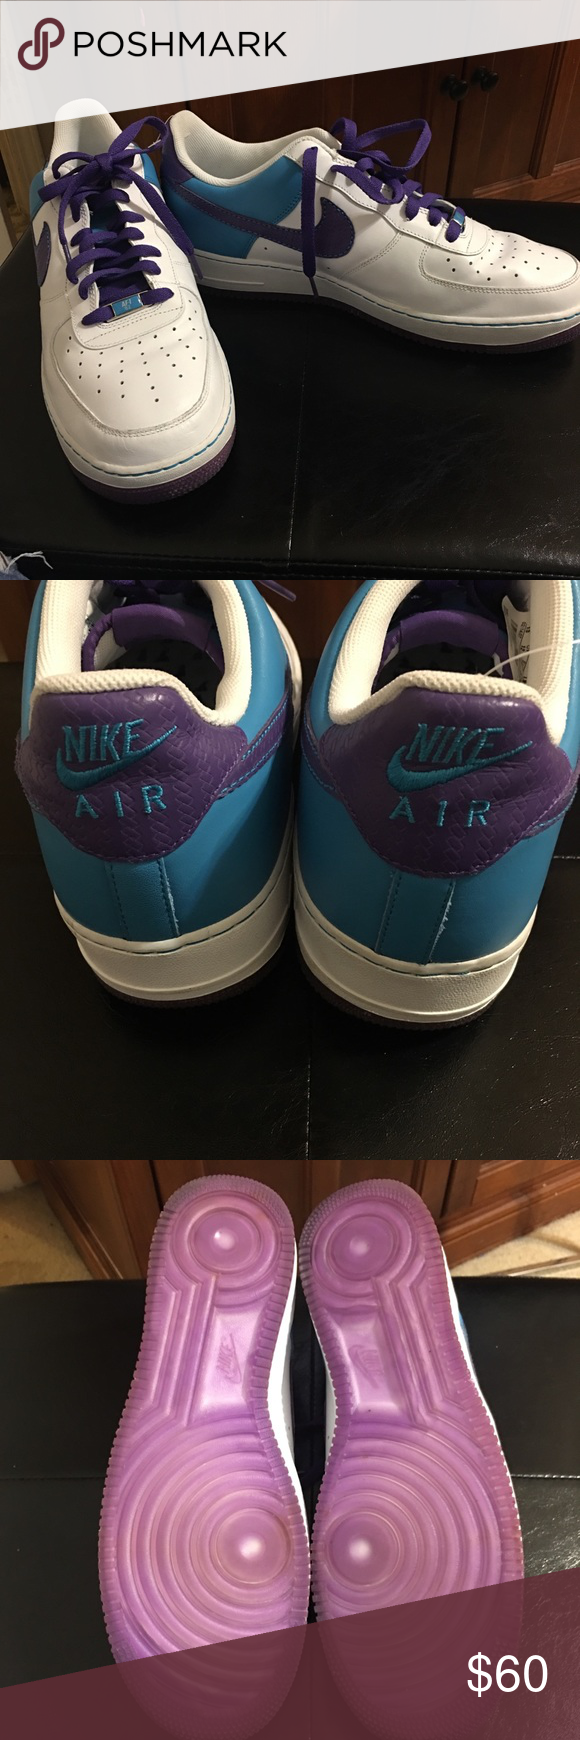 outlet store 2103a b908a nike air force 1 25th low white purple